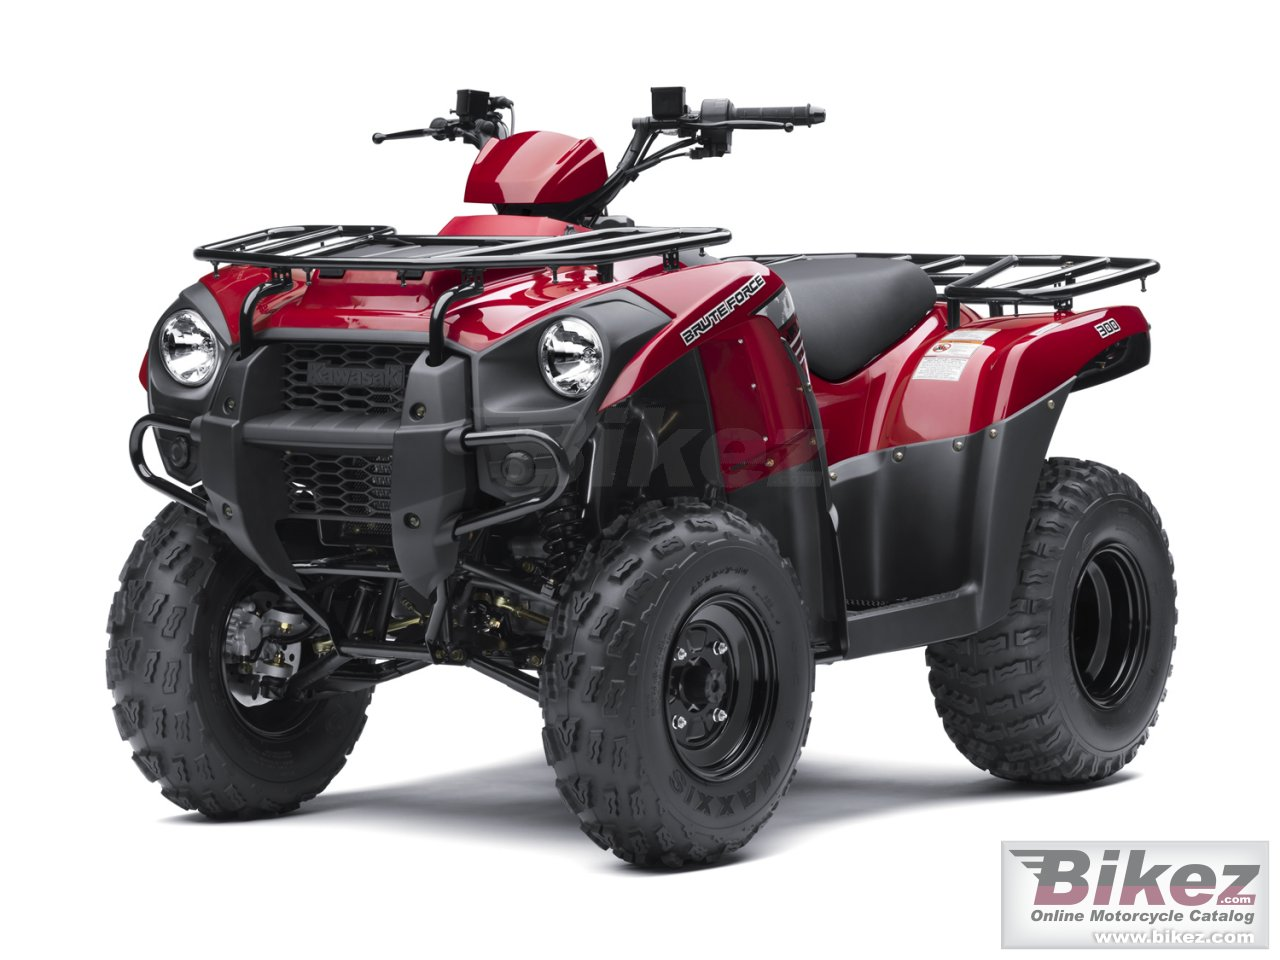 Big Kawasaki brute force 300 picture and wallpaper from Bikez.com